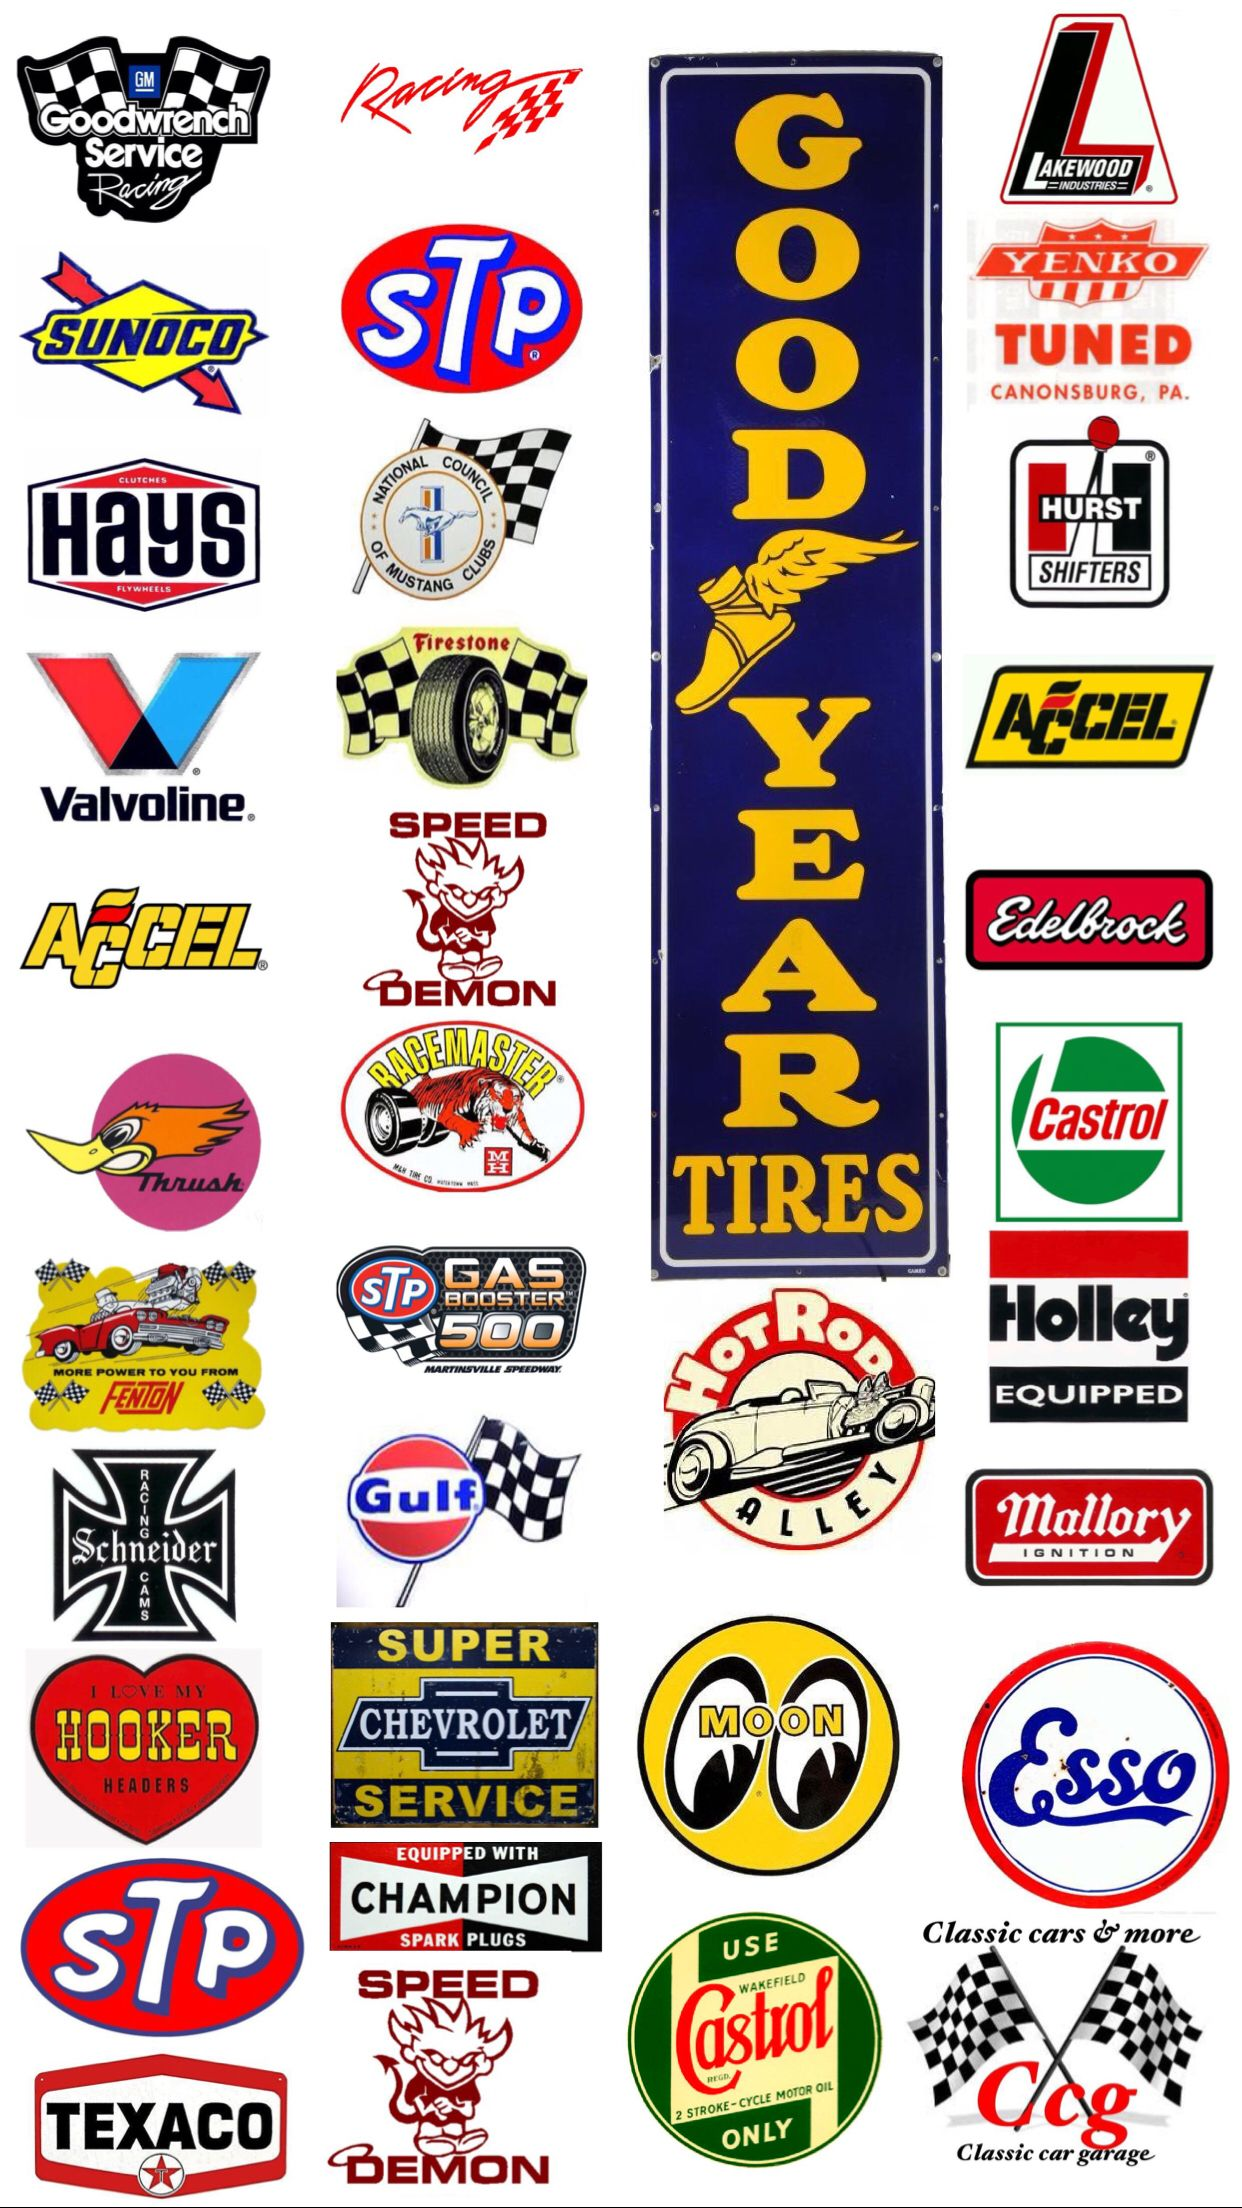 Pin By Gerardo Del Castillo Campos On Classic Car Garage More Model Cars Collection Racing Stickers Retro Logos